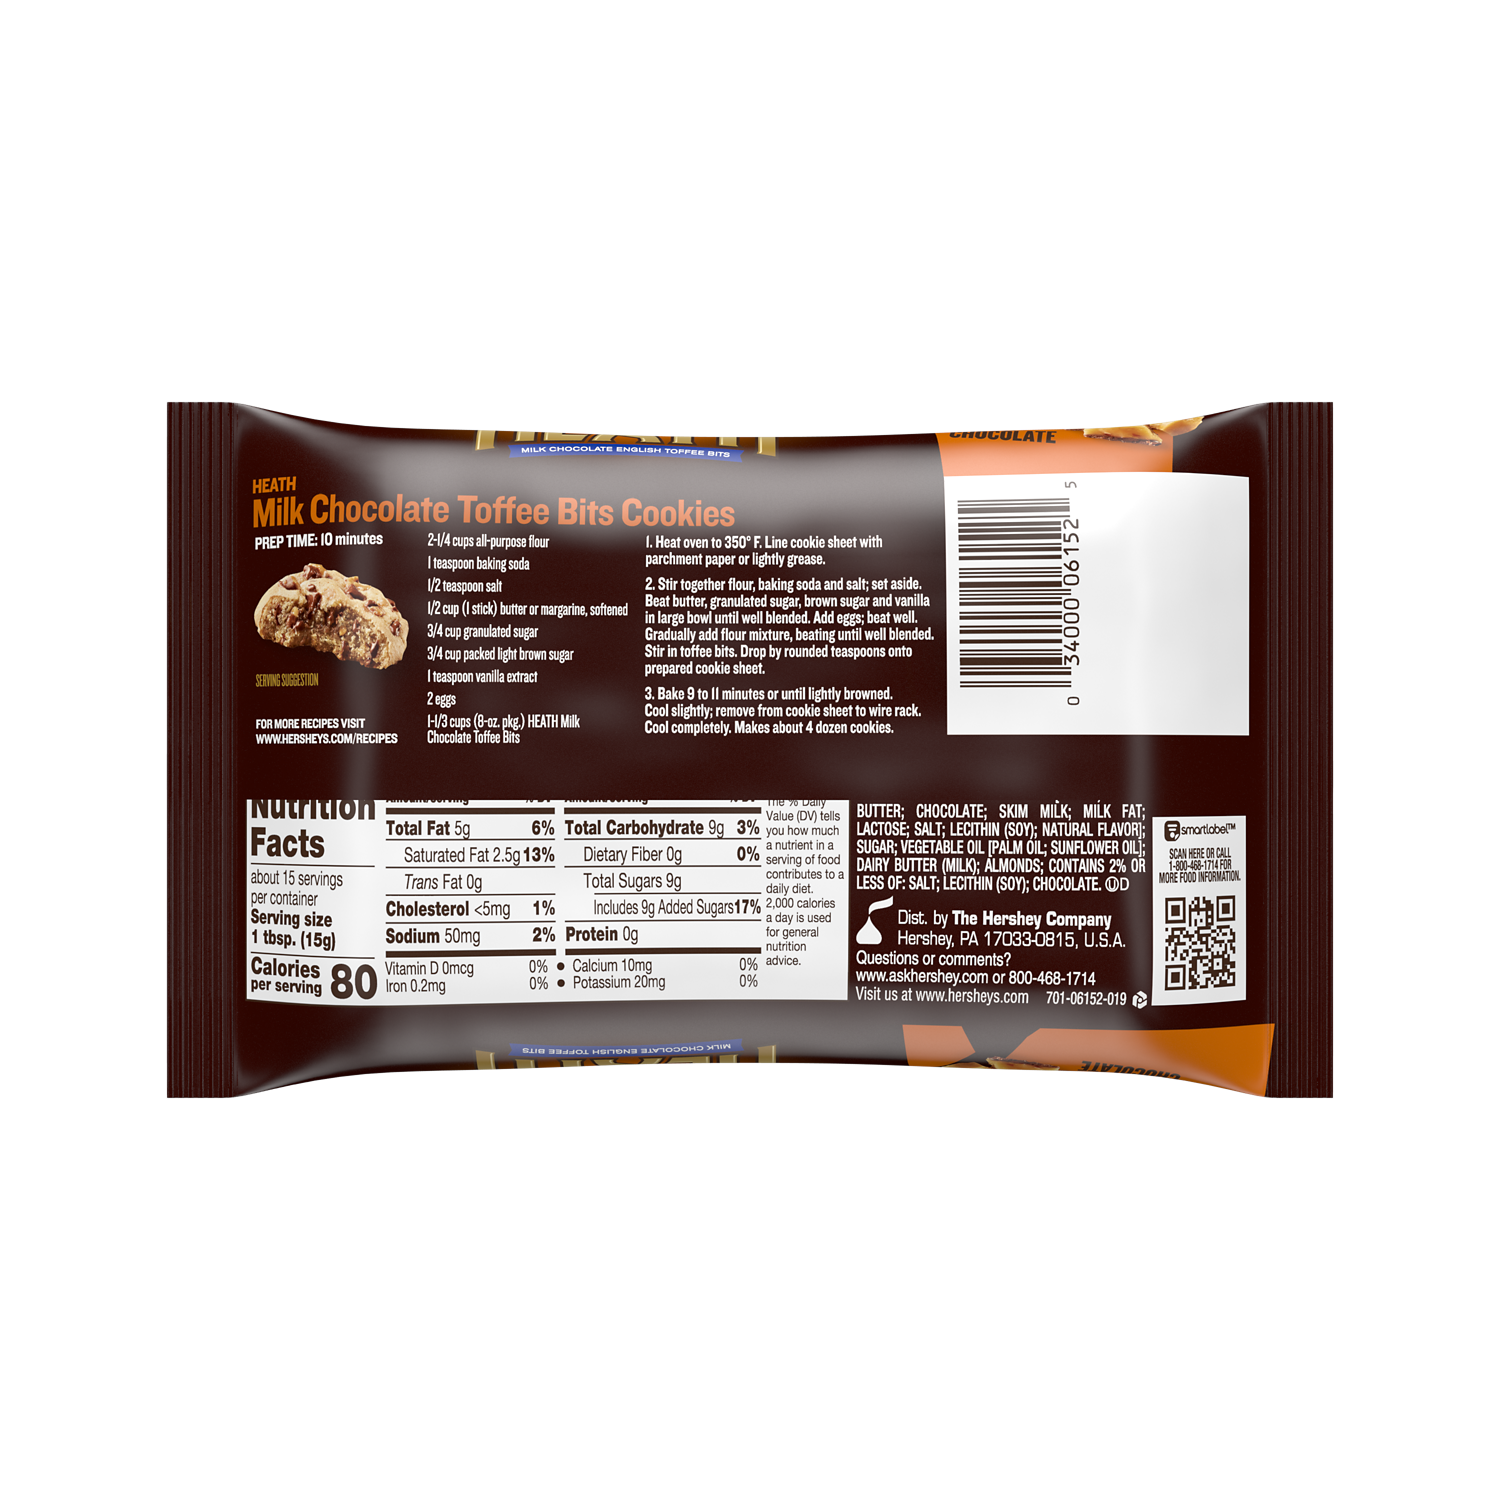 HEATH Milk Chocolate English Toffee Bits, 8 oz bag - Back of Package